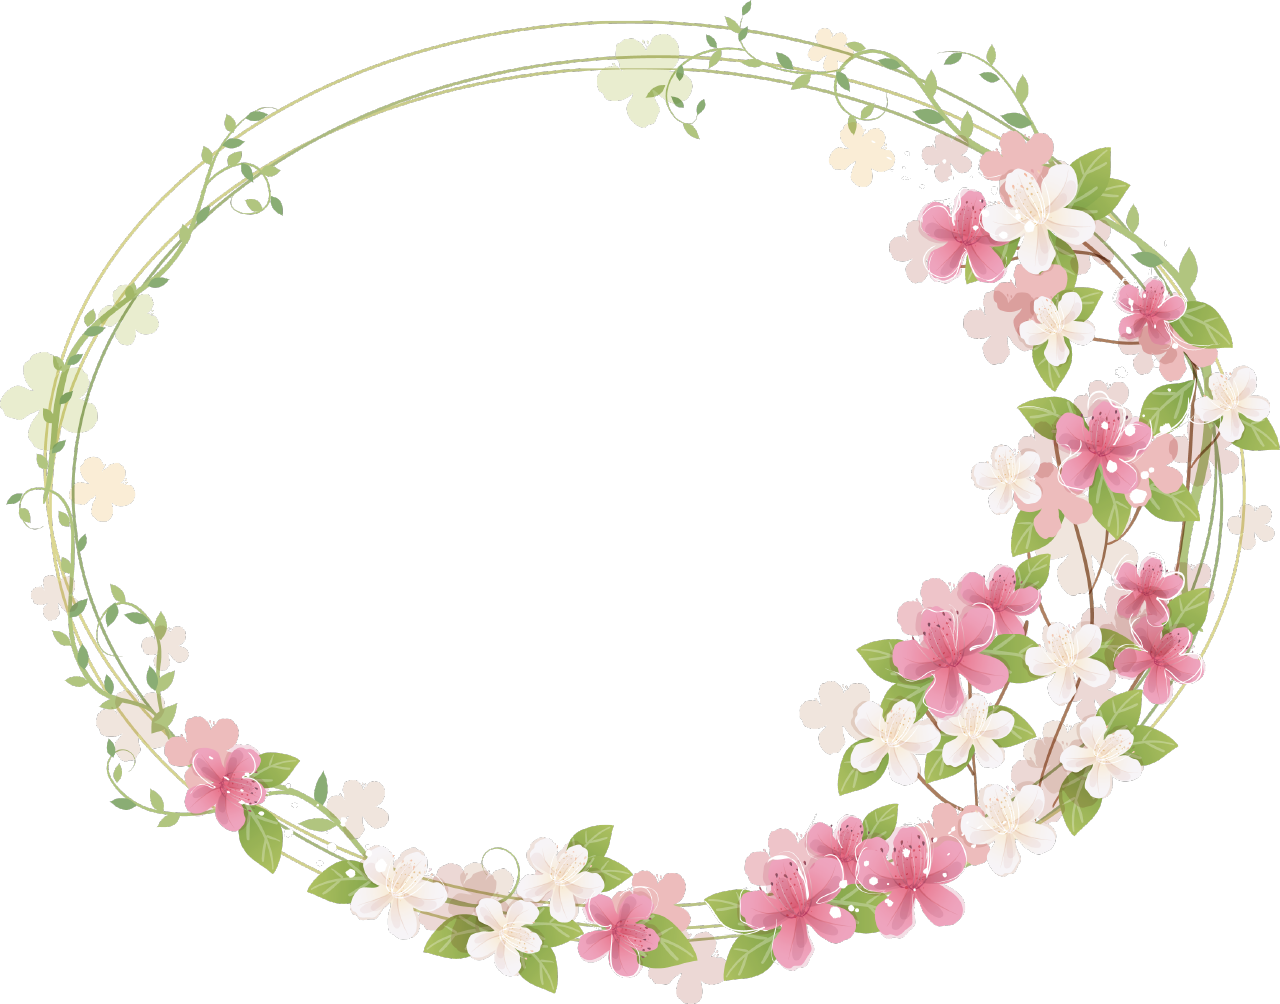 Floral frames png. Shapes design google search